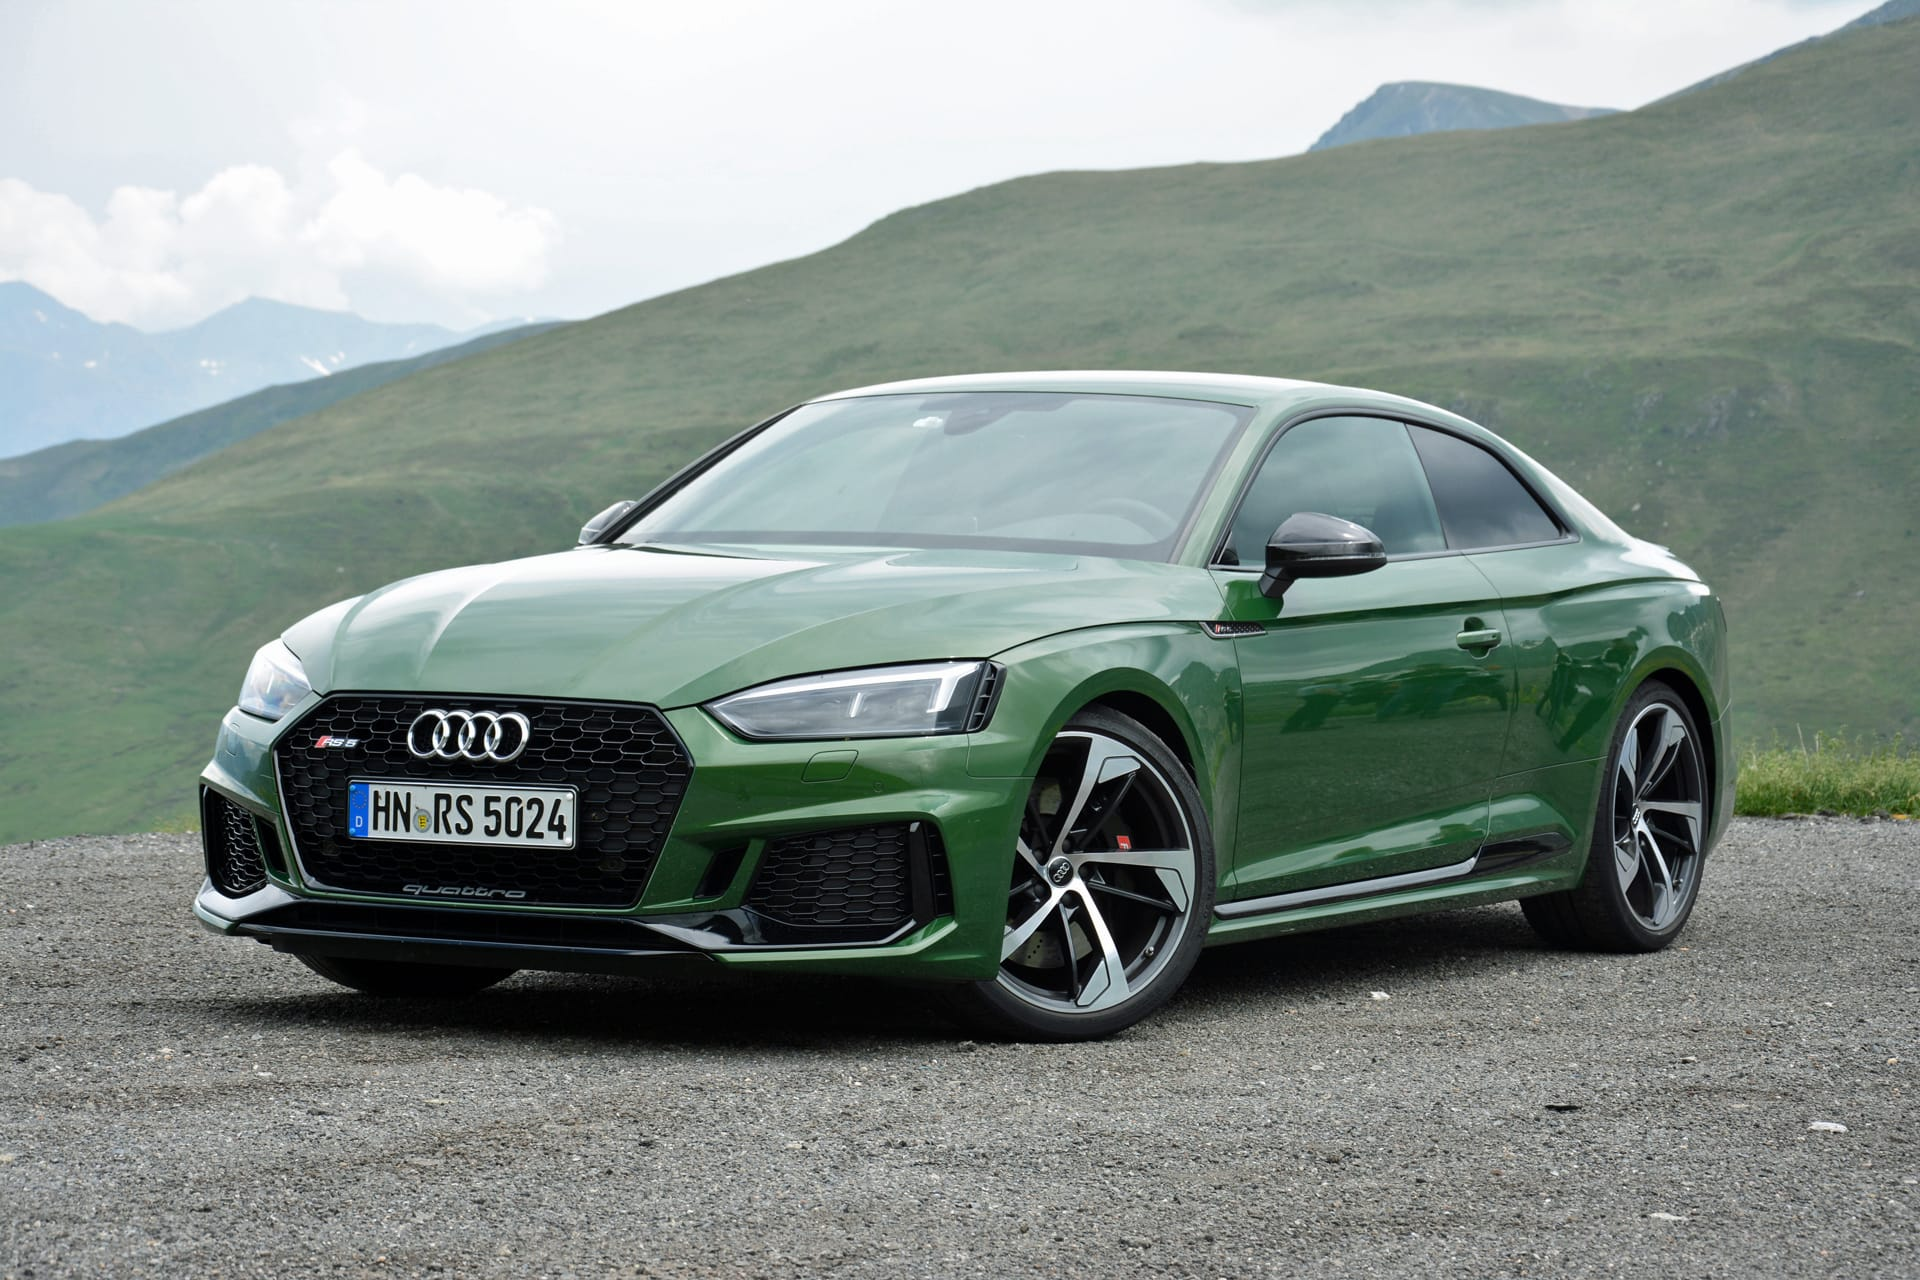 2018 audi rs 5 first drive review green with mean ultimate car rentals. Black Bedroom Furniture Sets. Home Design Ideas